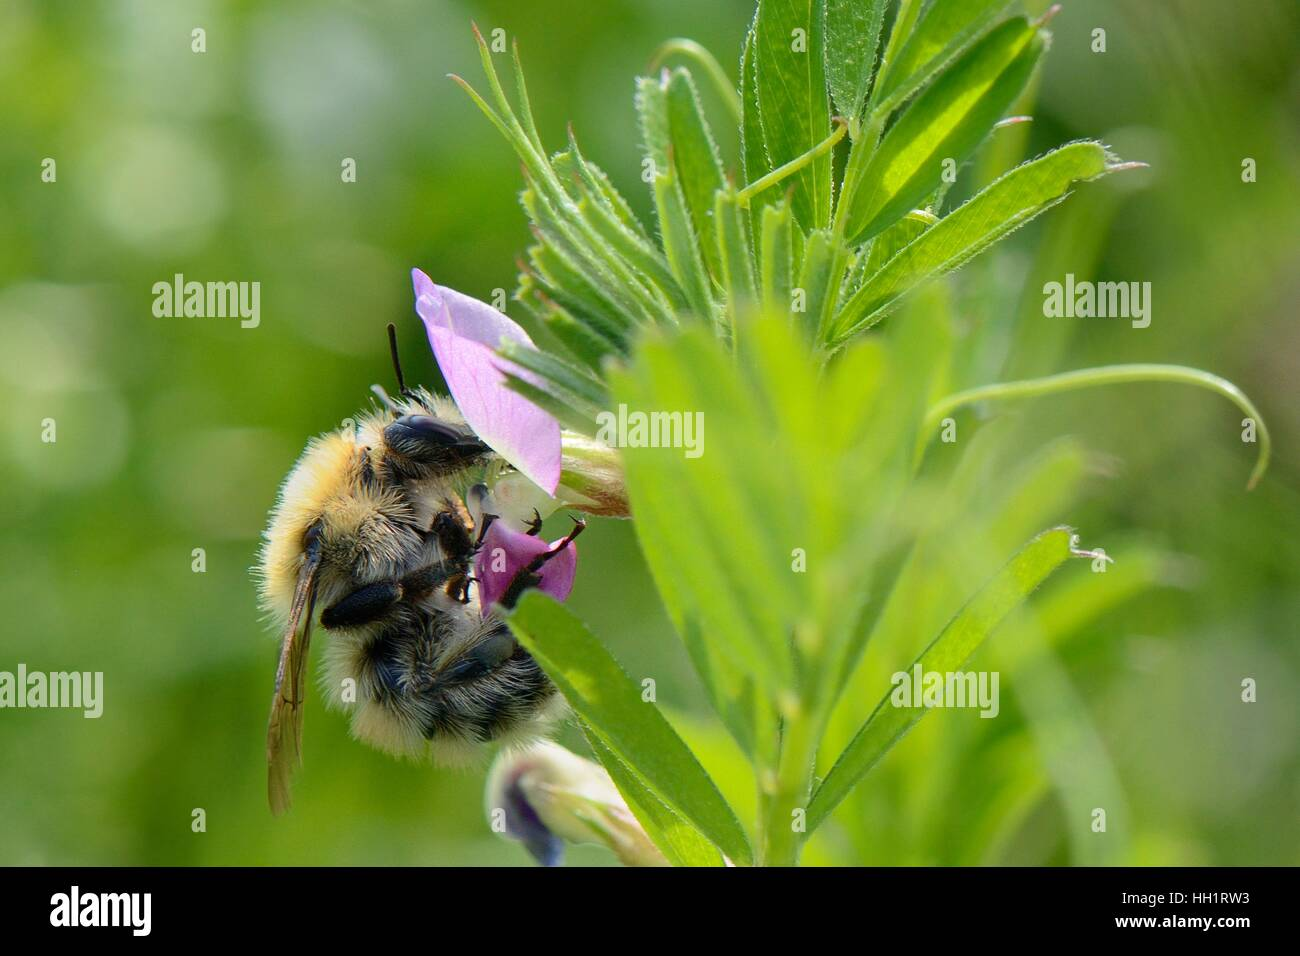 Moss carder / Large carder bumblebee (Bombus muscorum) nectaring on Common vetch (Vicia sativum), Dungeness, Kent, - Stock Image